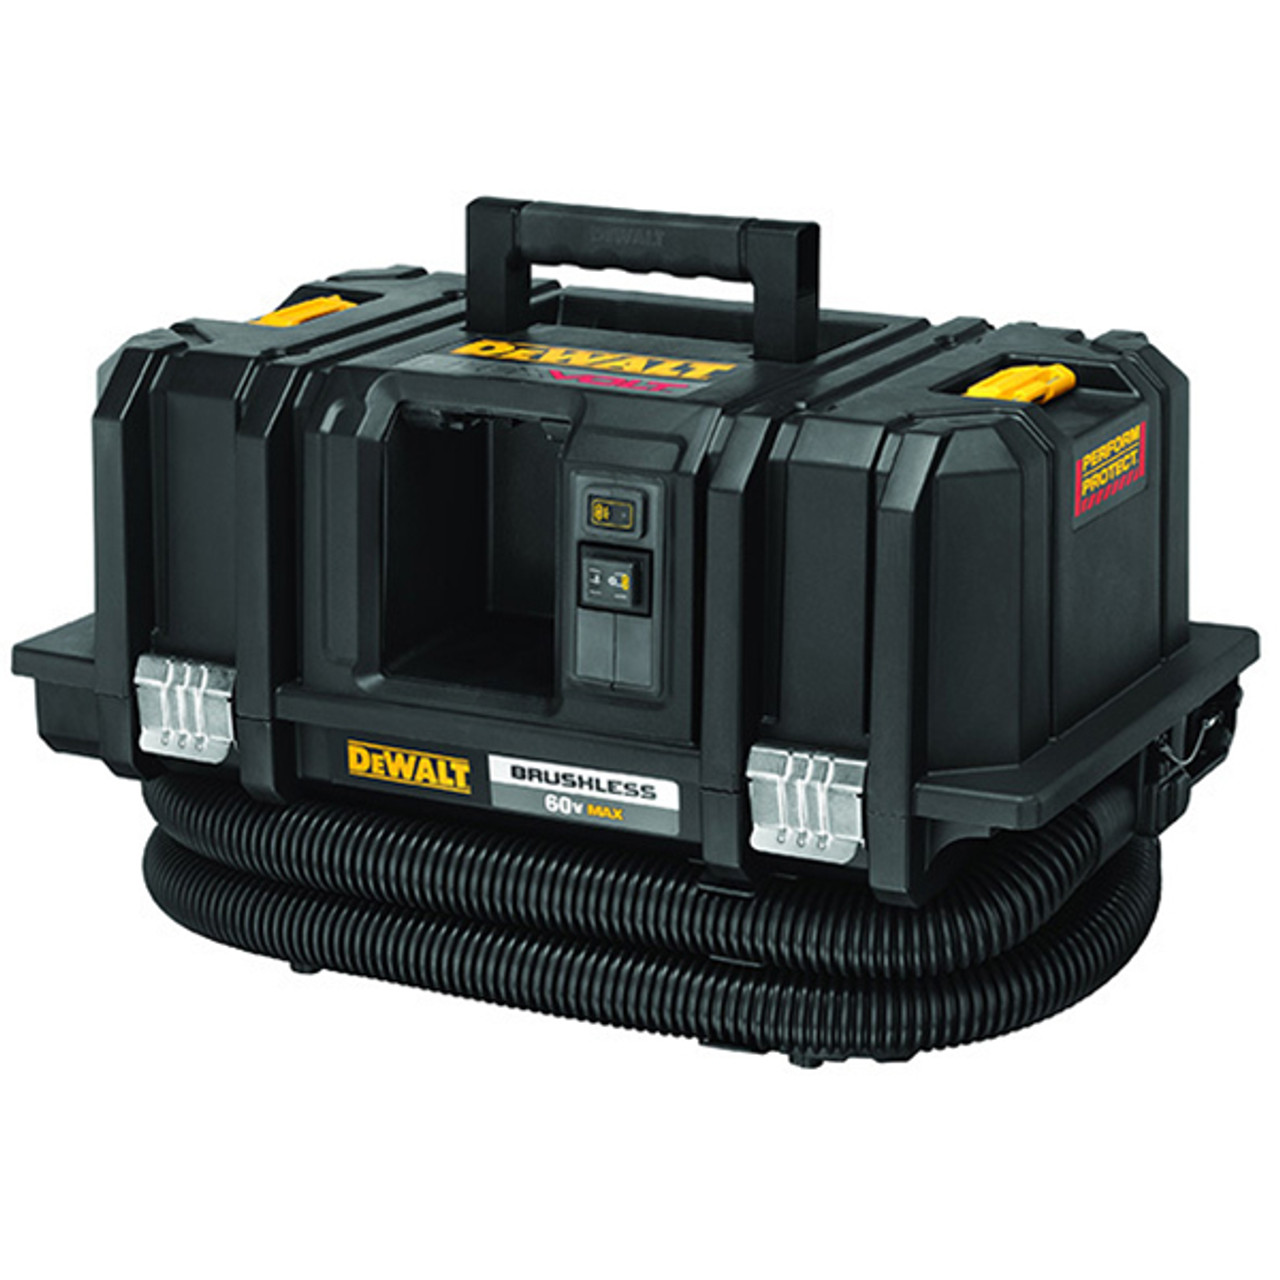 Dewalt Dust Extractor >> Dewalt Dcv585b Flexvolt 20 60v Max Dust Extractor Tool Only